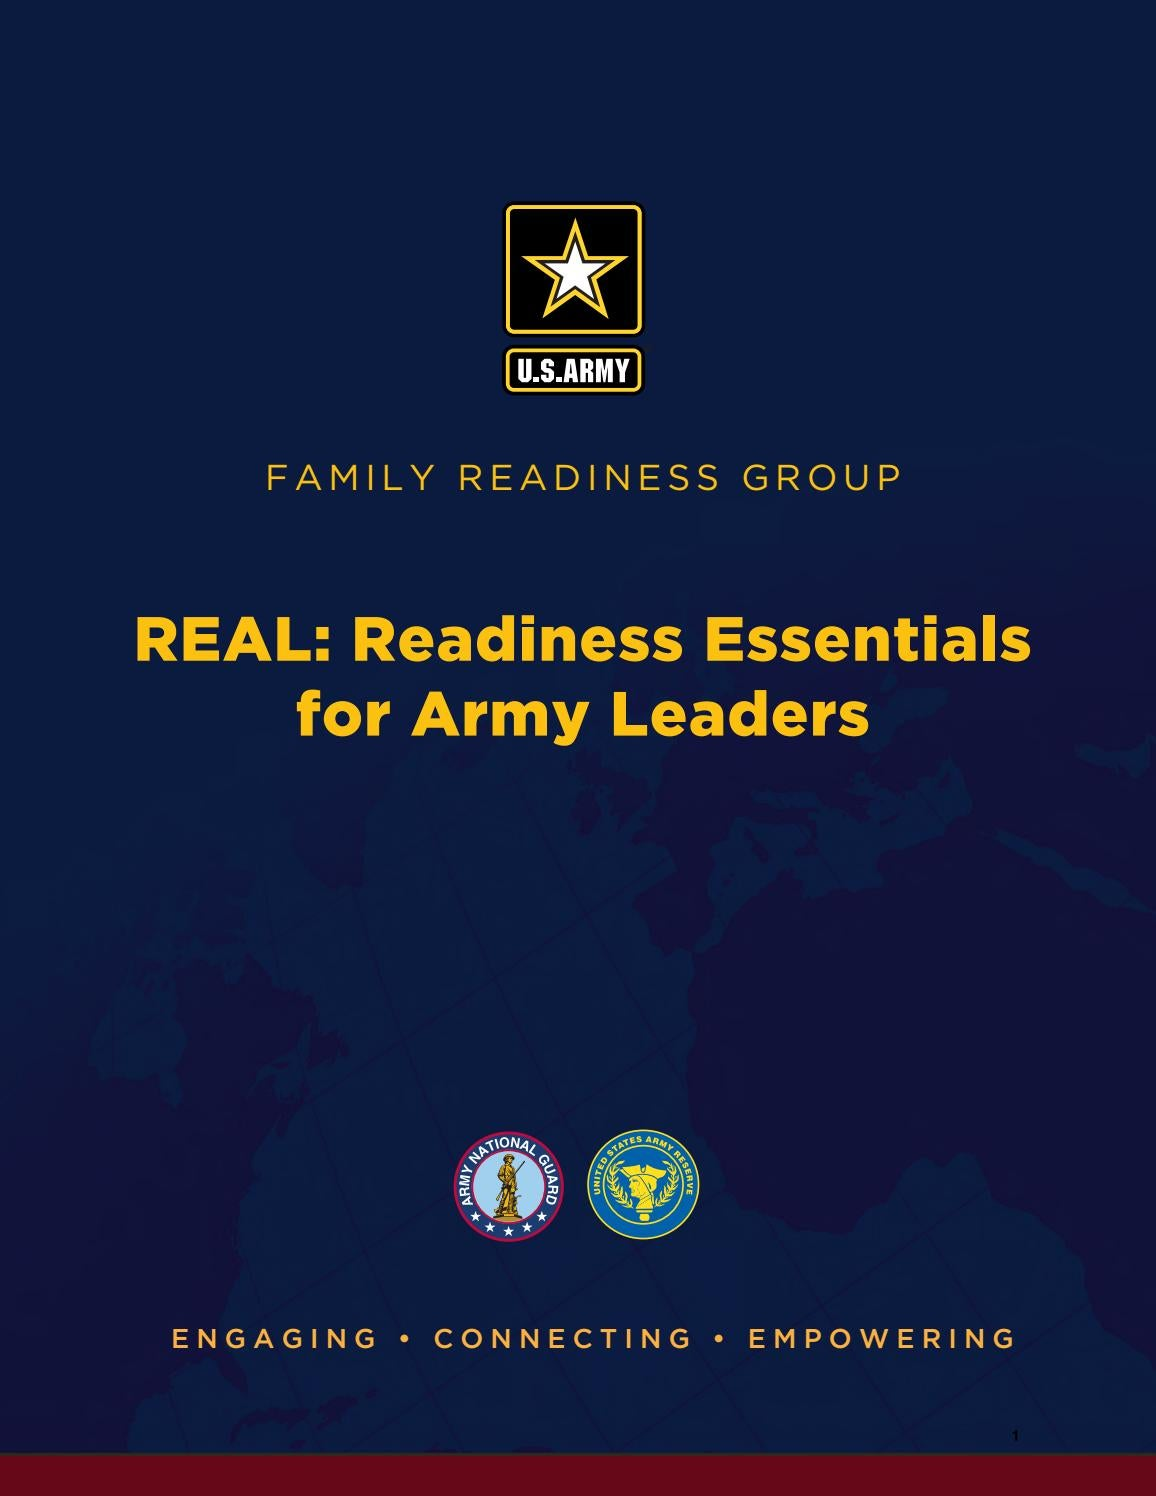 Real readiness essentials for army leaders 2016 by bavaria marketing real readiness essentials for army leaders 2016 by bavaria marketing issuu nvjuhfo Gallery